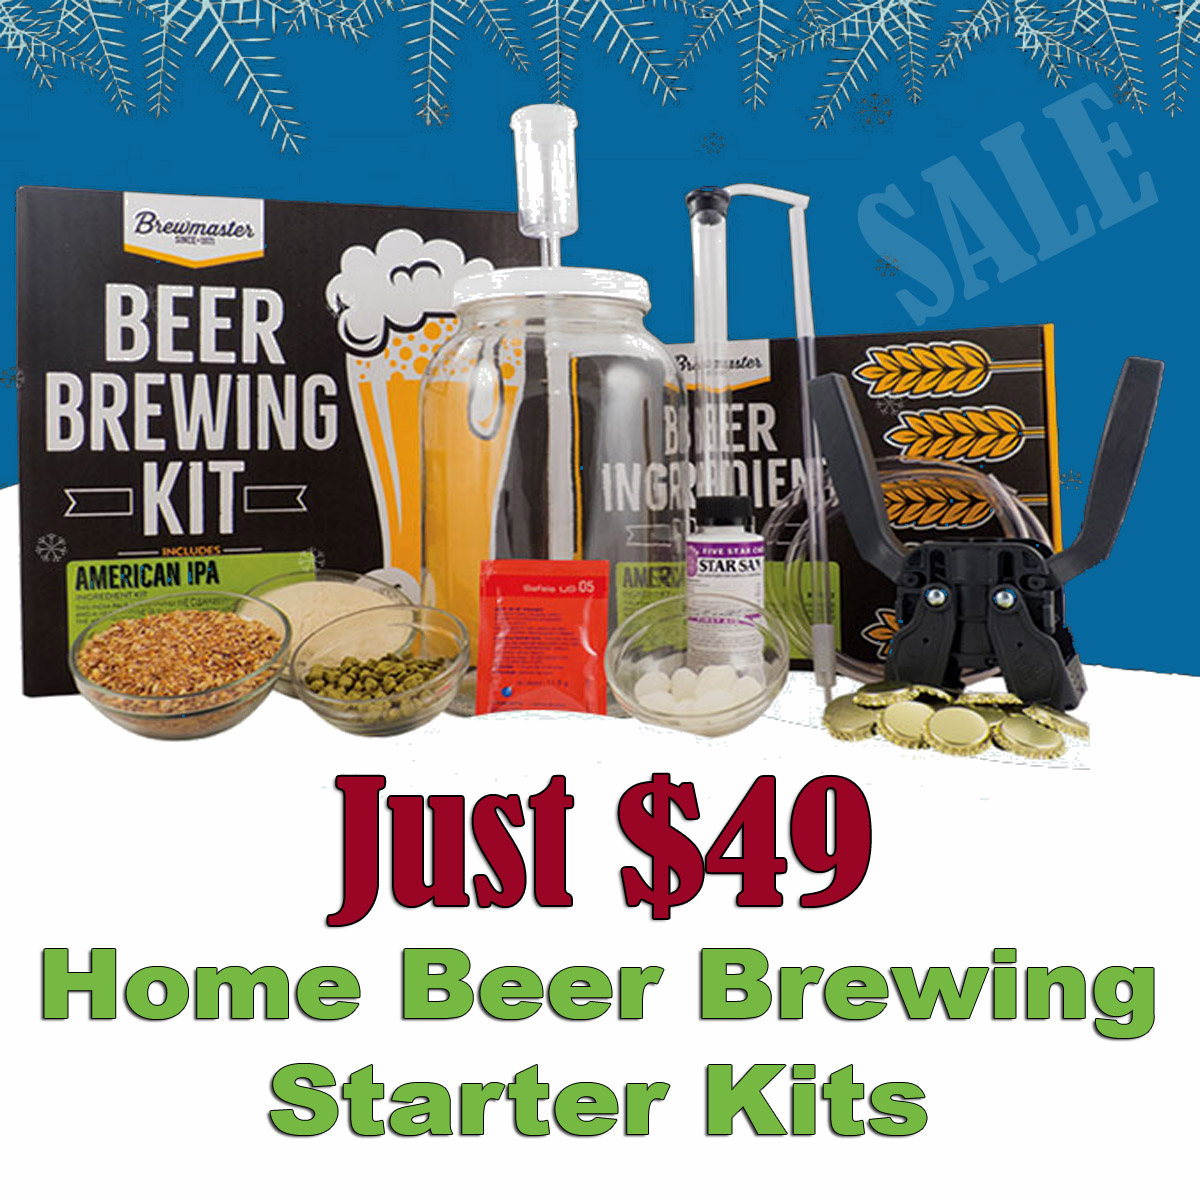 MoreBeer Home Beer Brewing Kits Just $49! The Perfect Christmas Gift! Sale